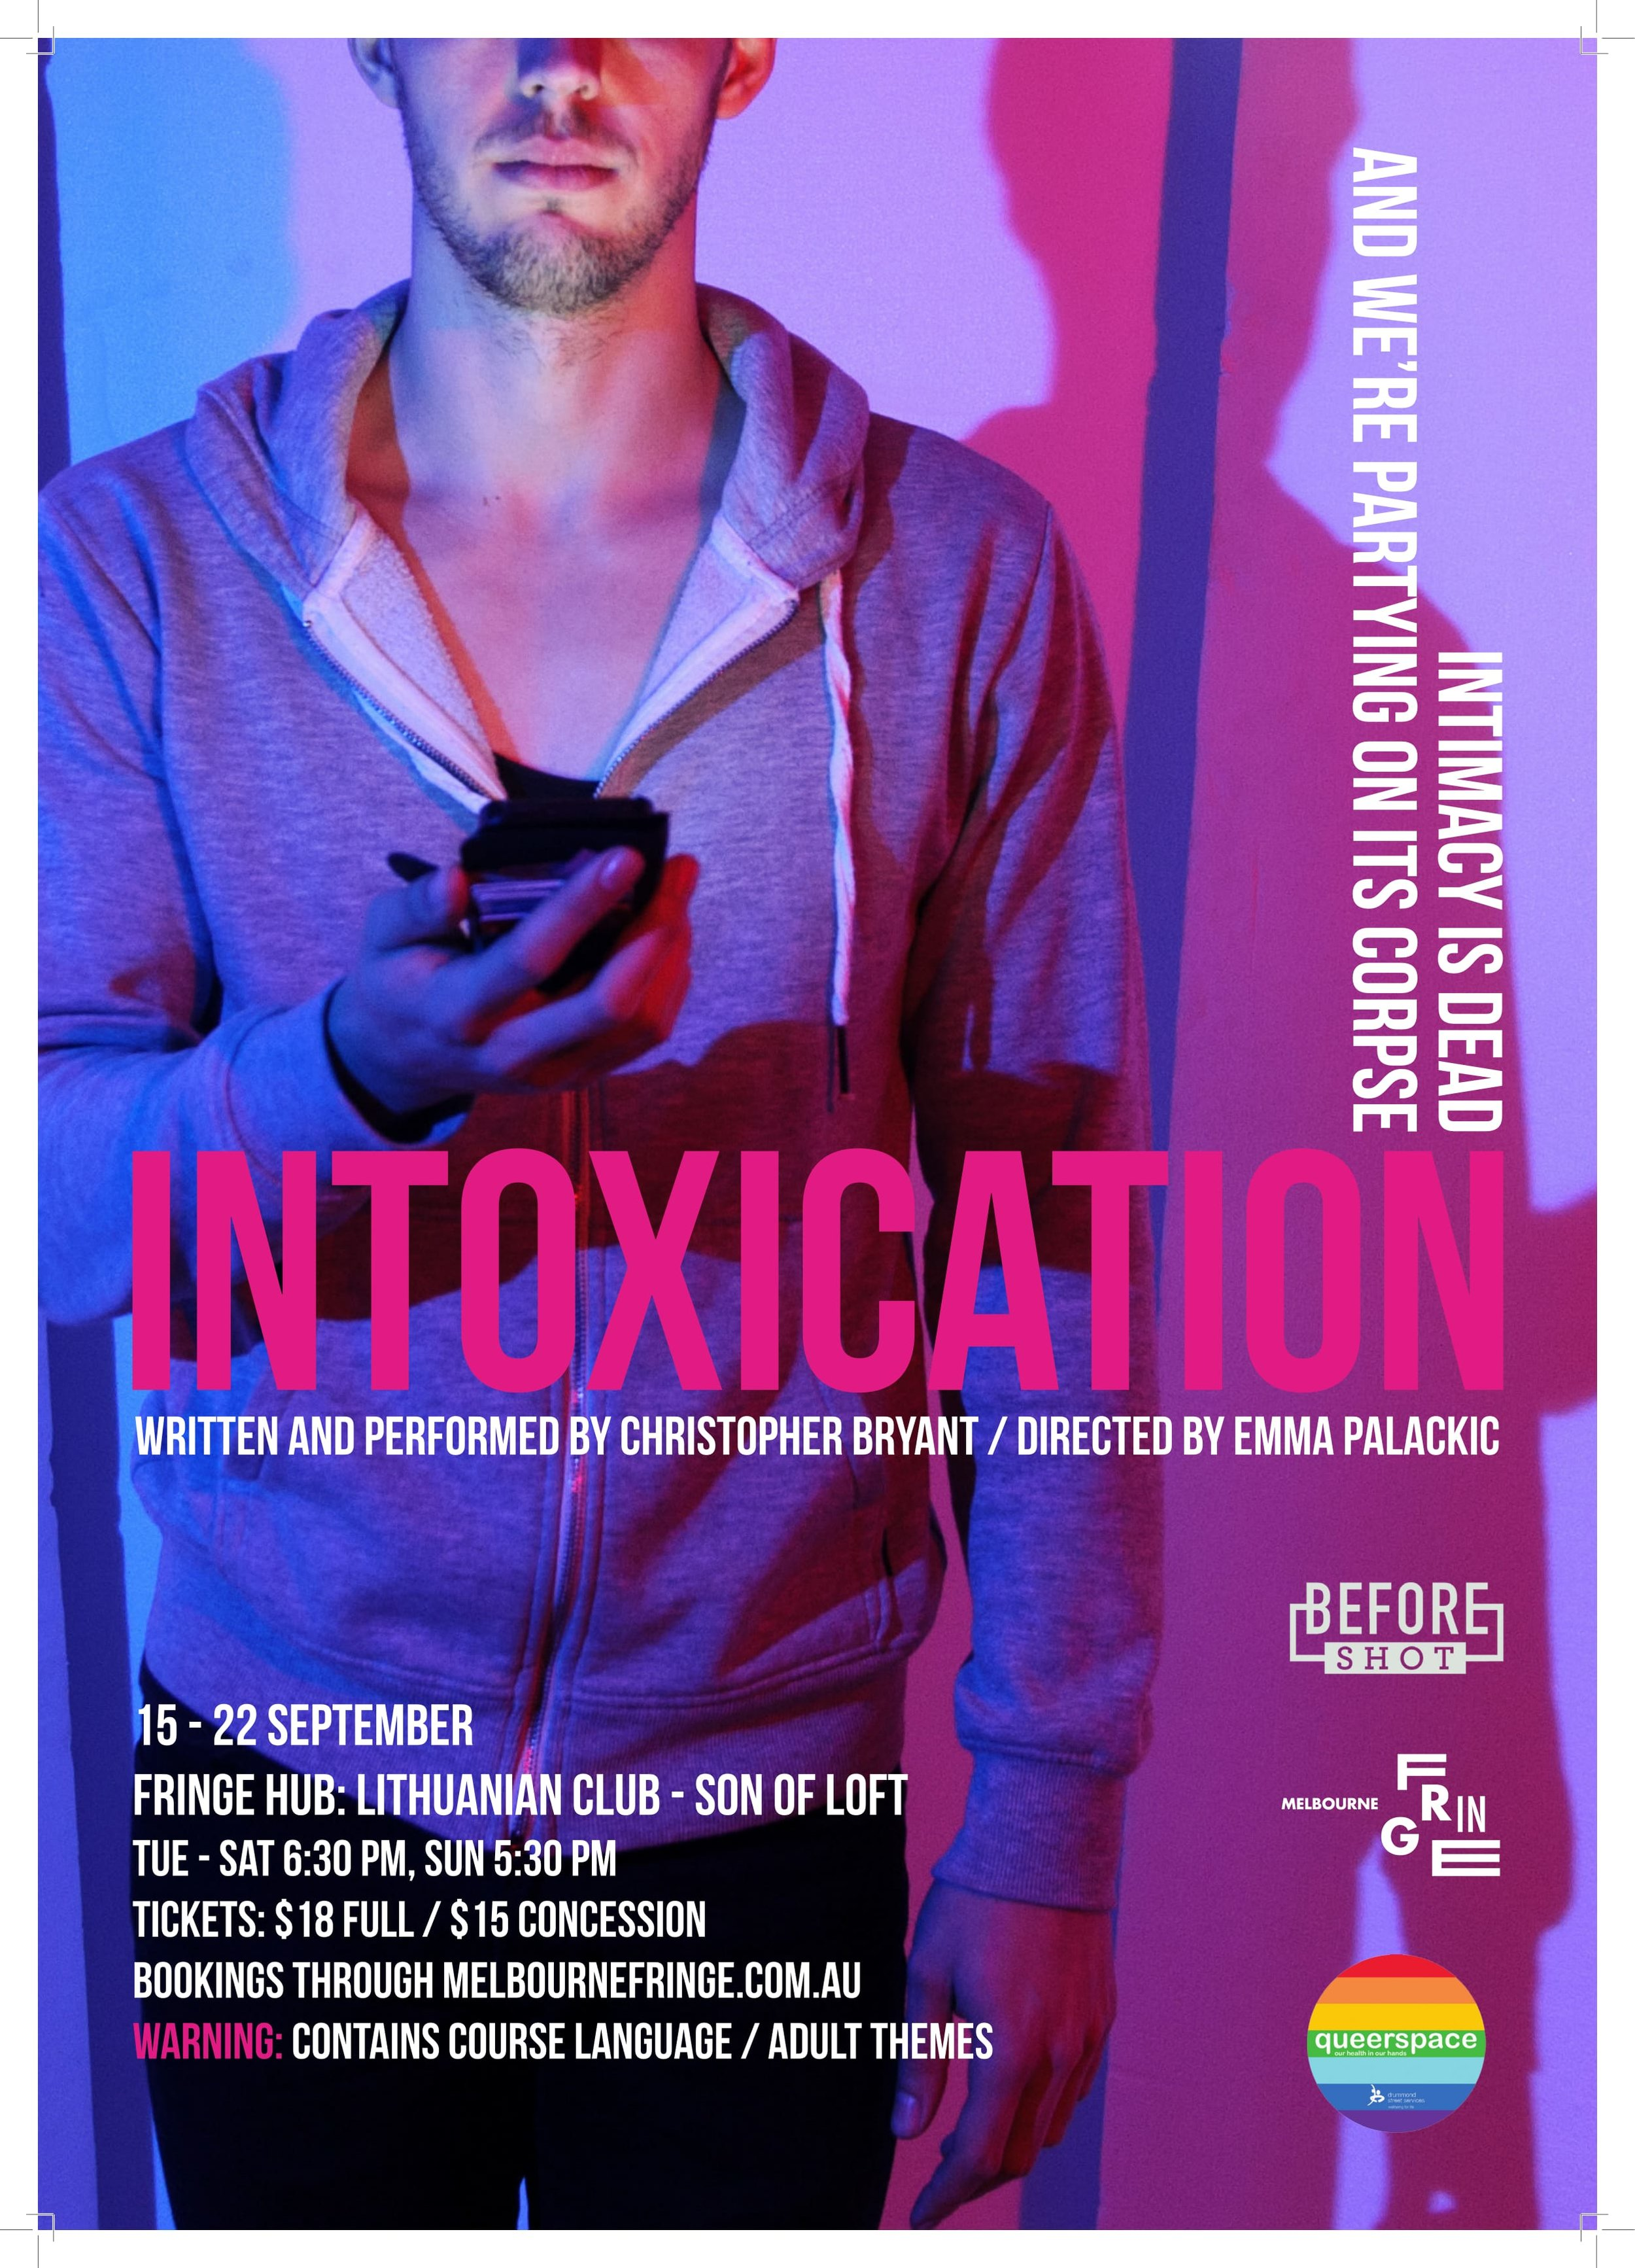 Intoxication Poster FINAL-1.jpg